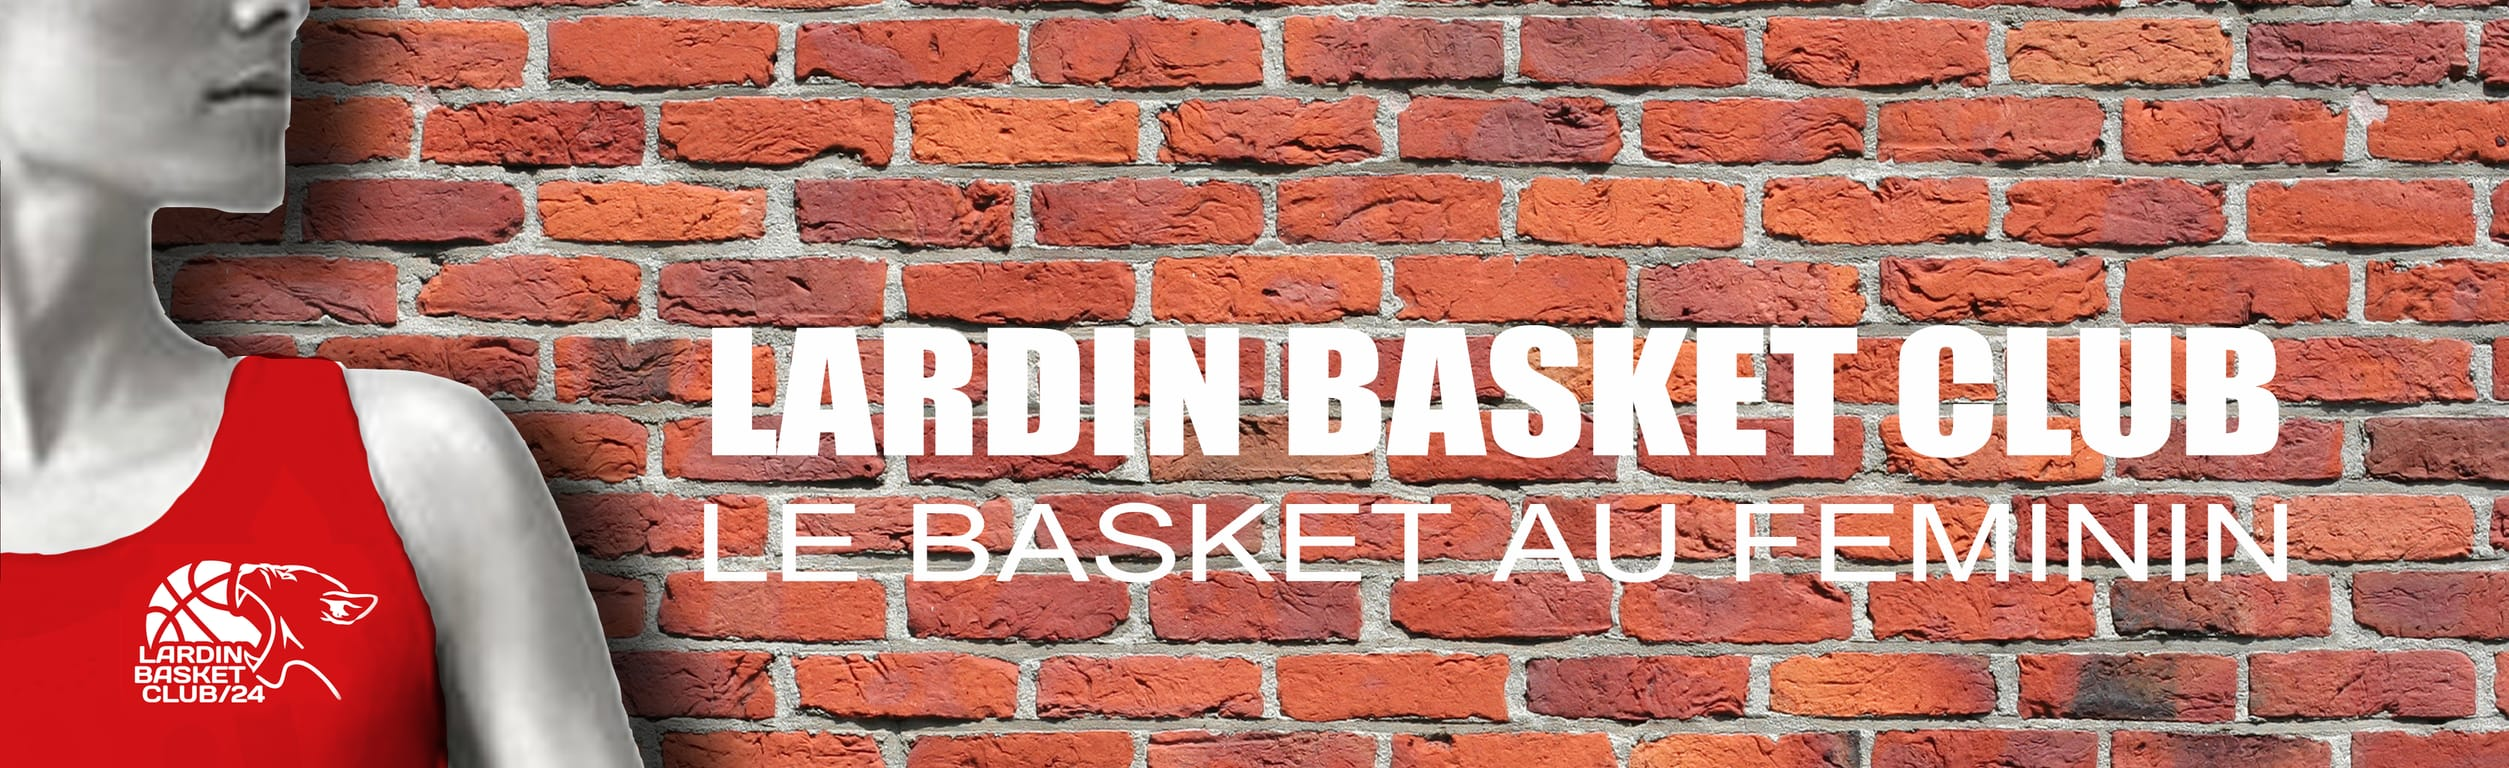 Lardin Basket Club